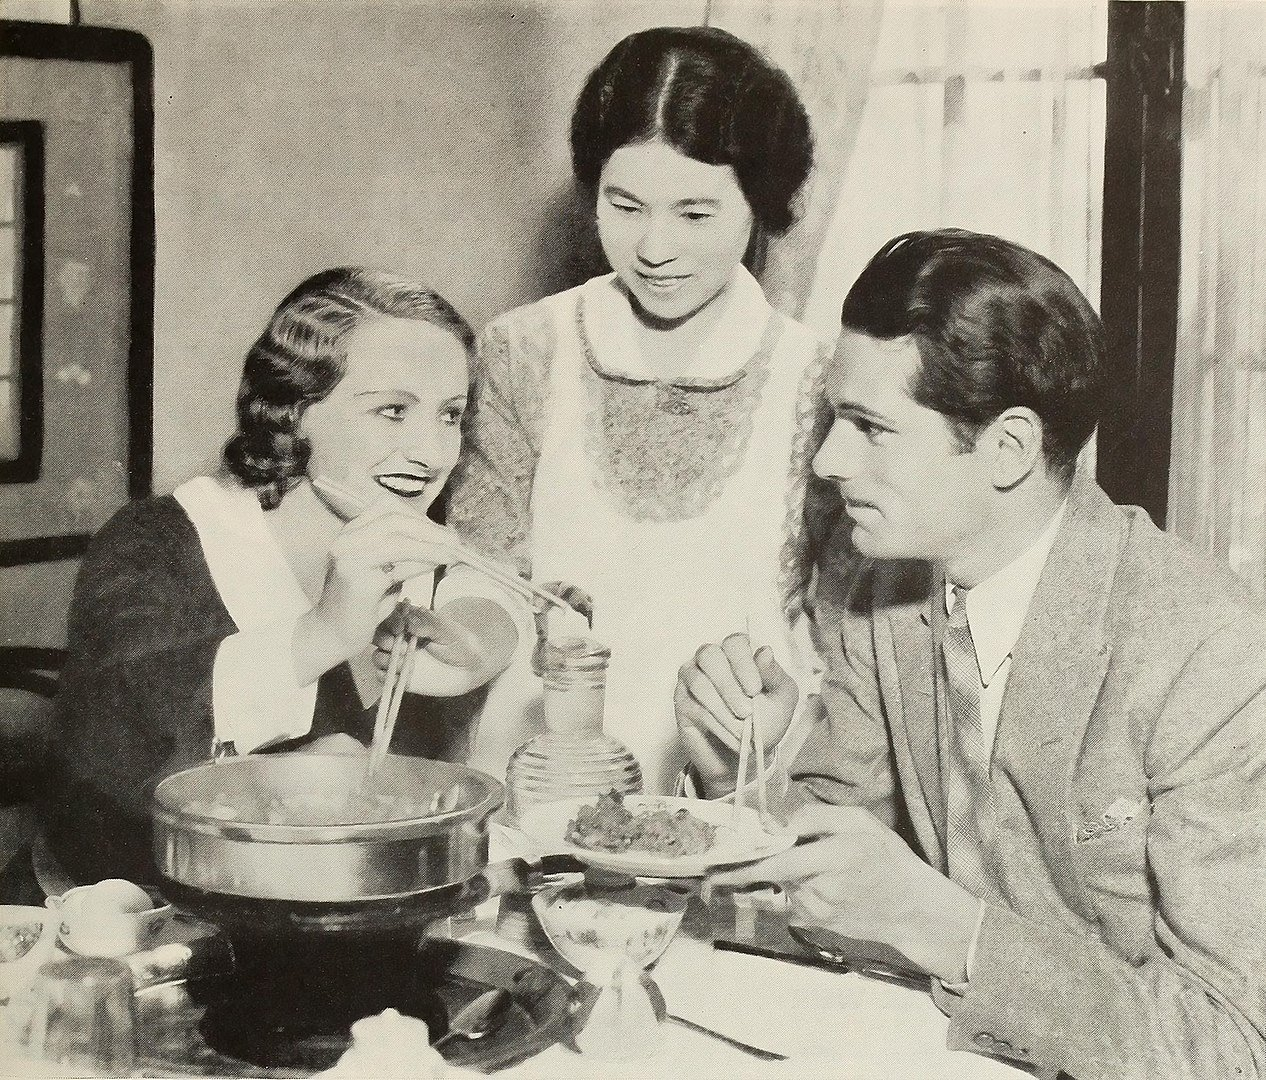 Olivier, with his first wife Jill Esmond at a Japanese restaurant in 1932 | Photo: Wikimedia Commons Images